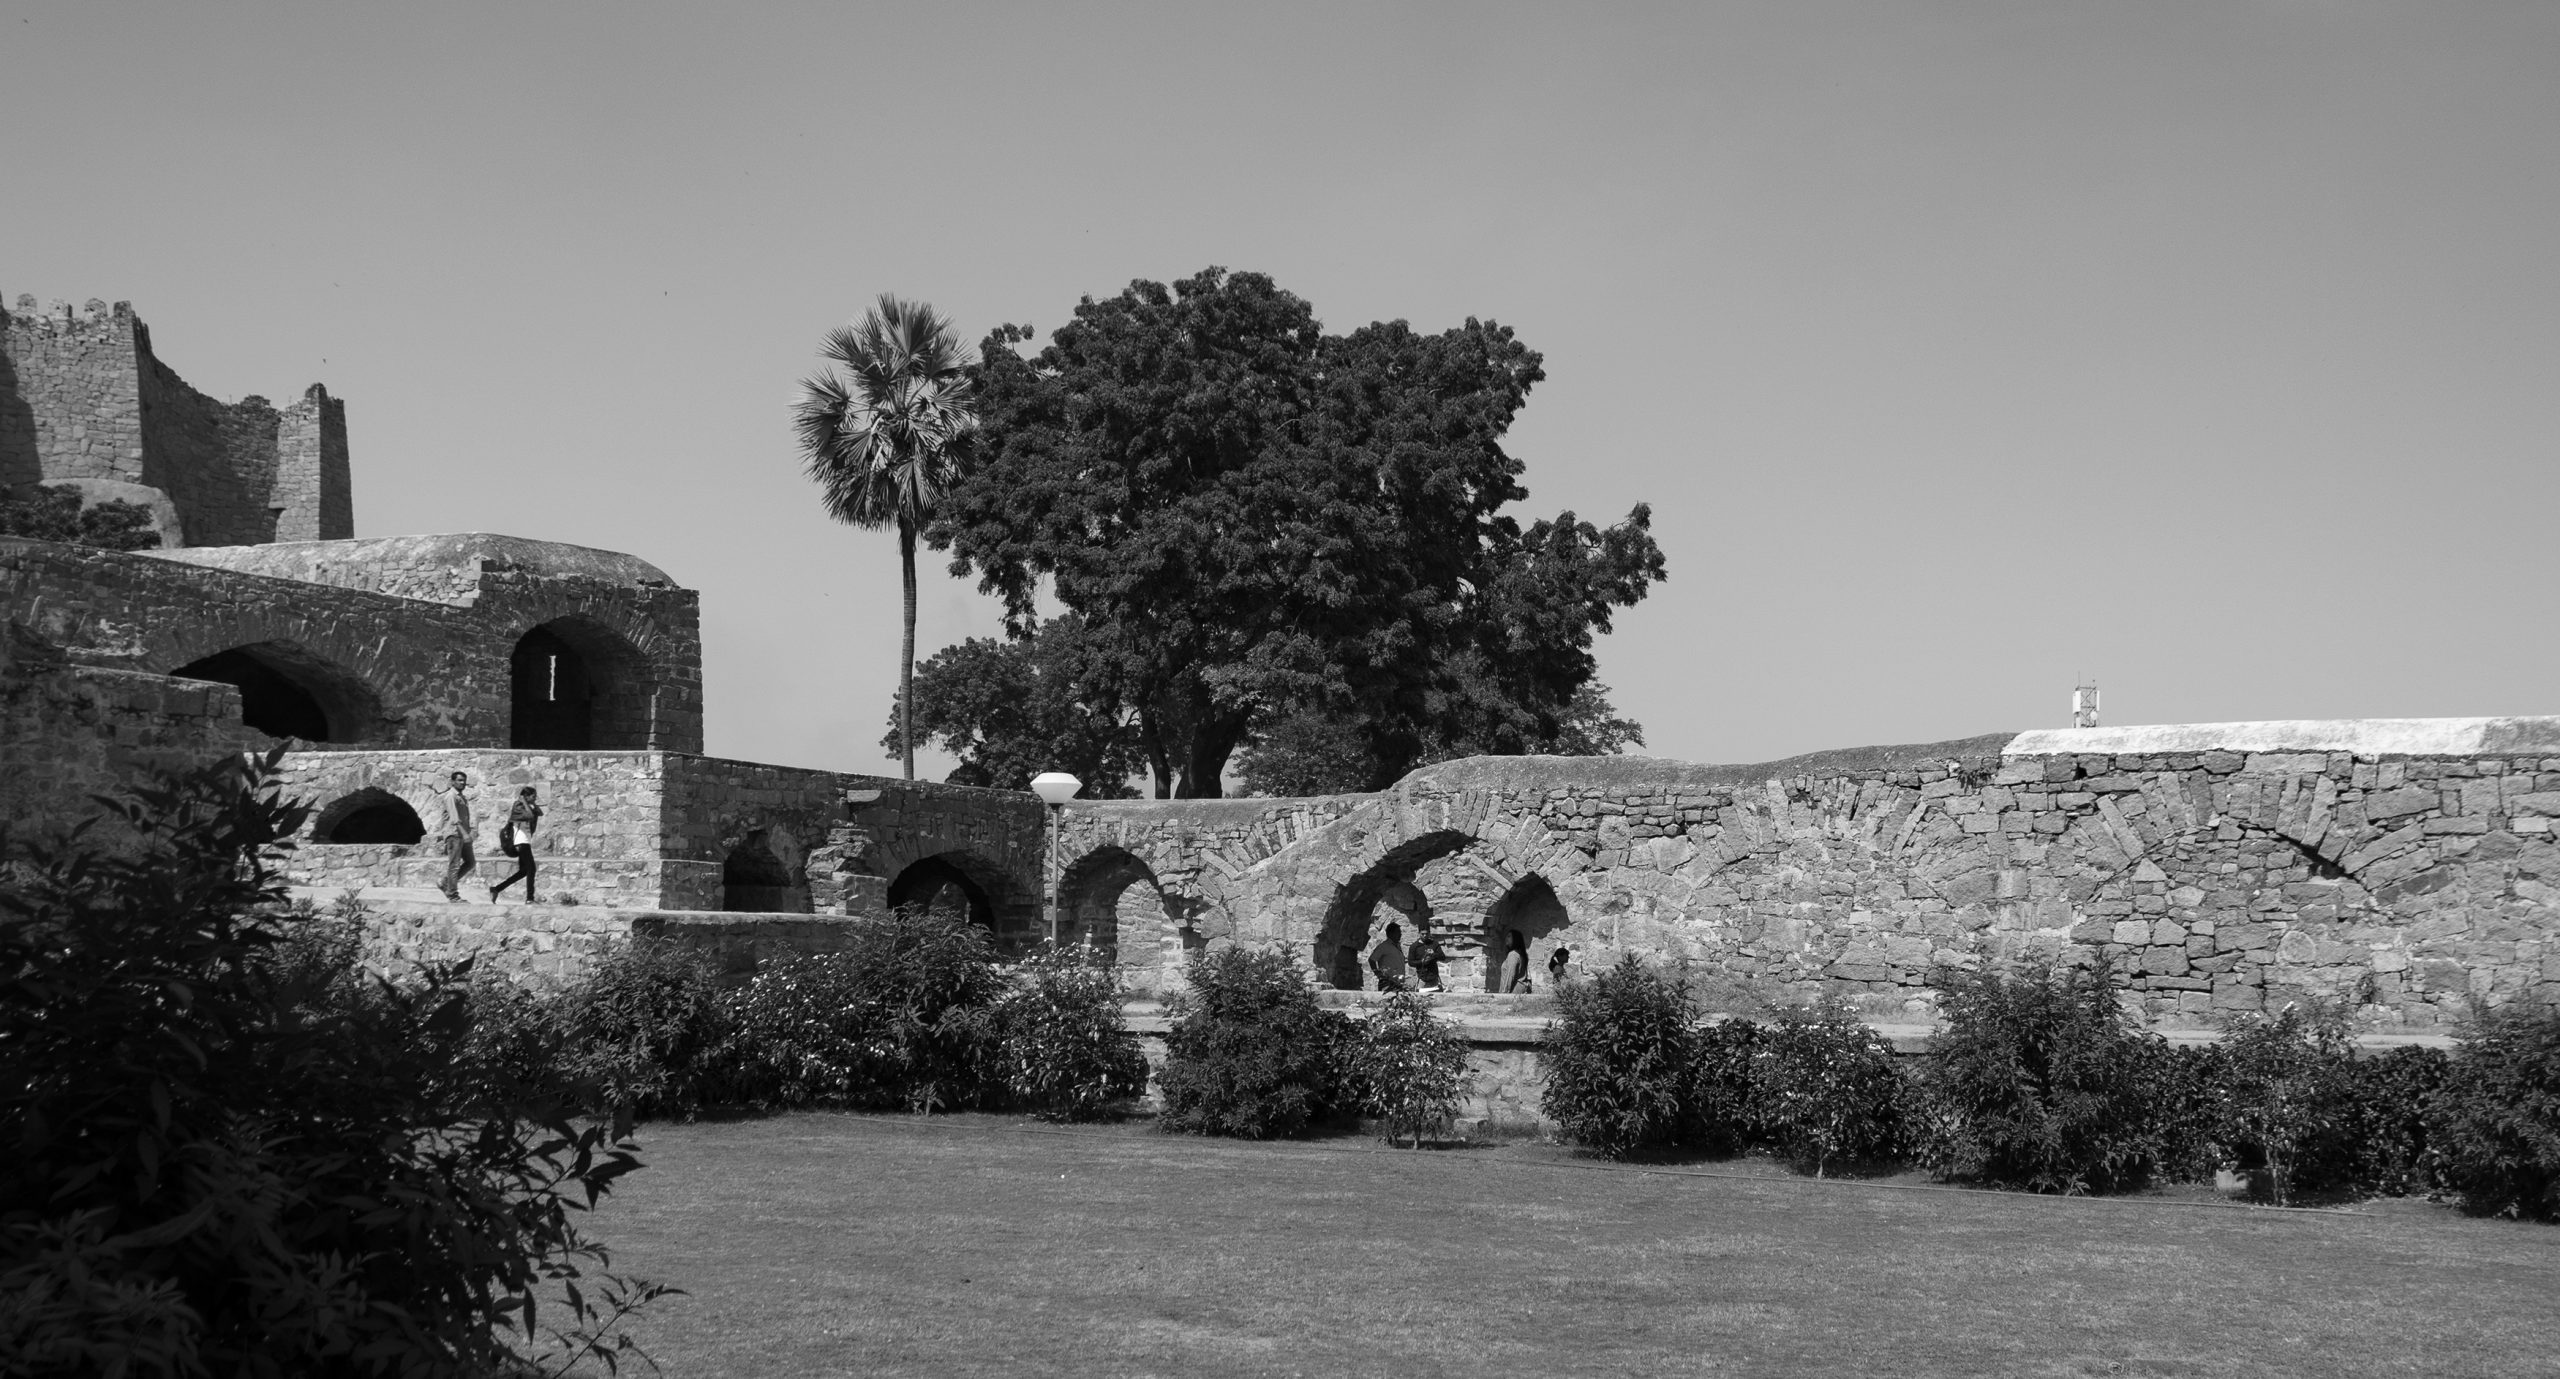 A historic fort